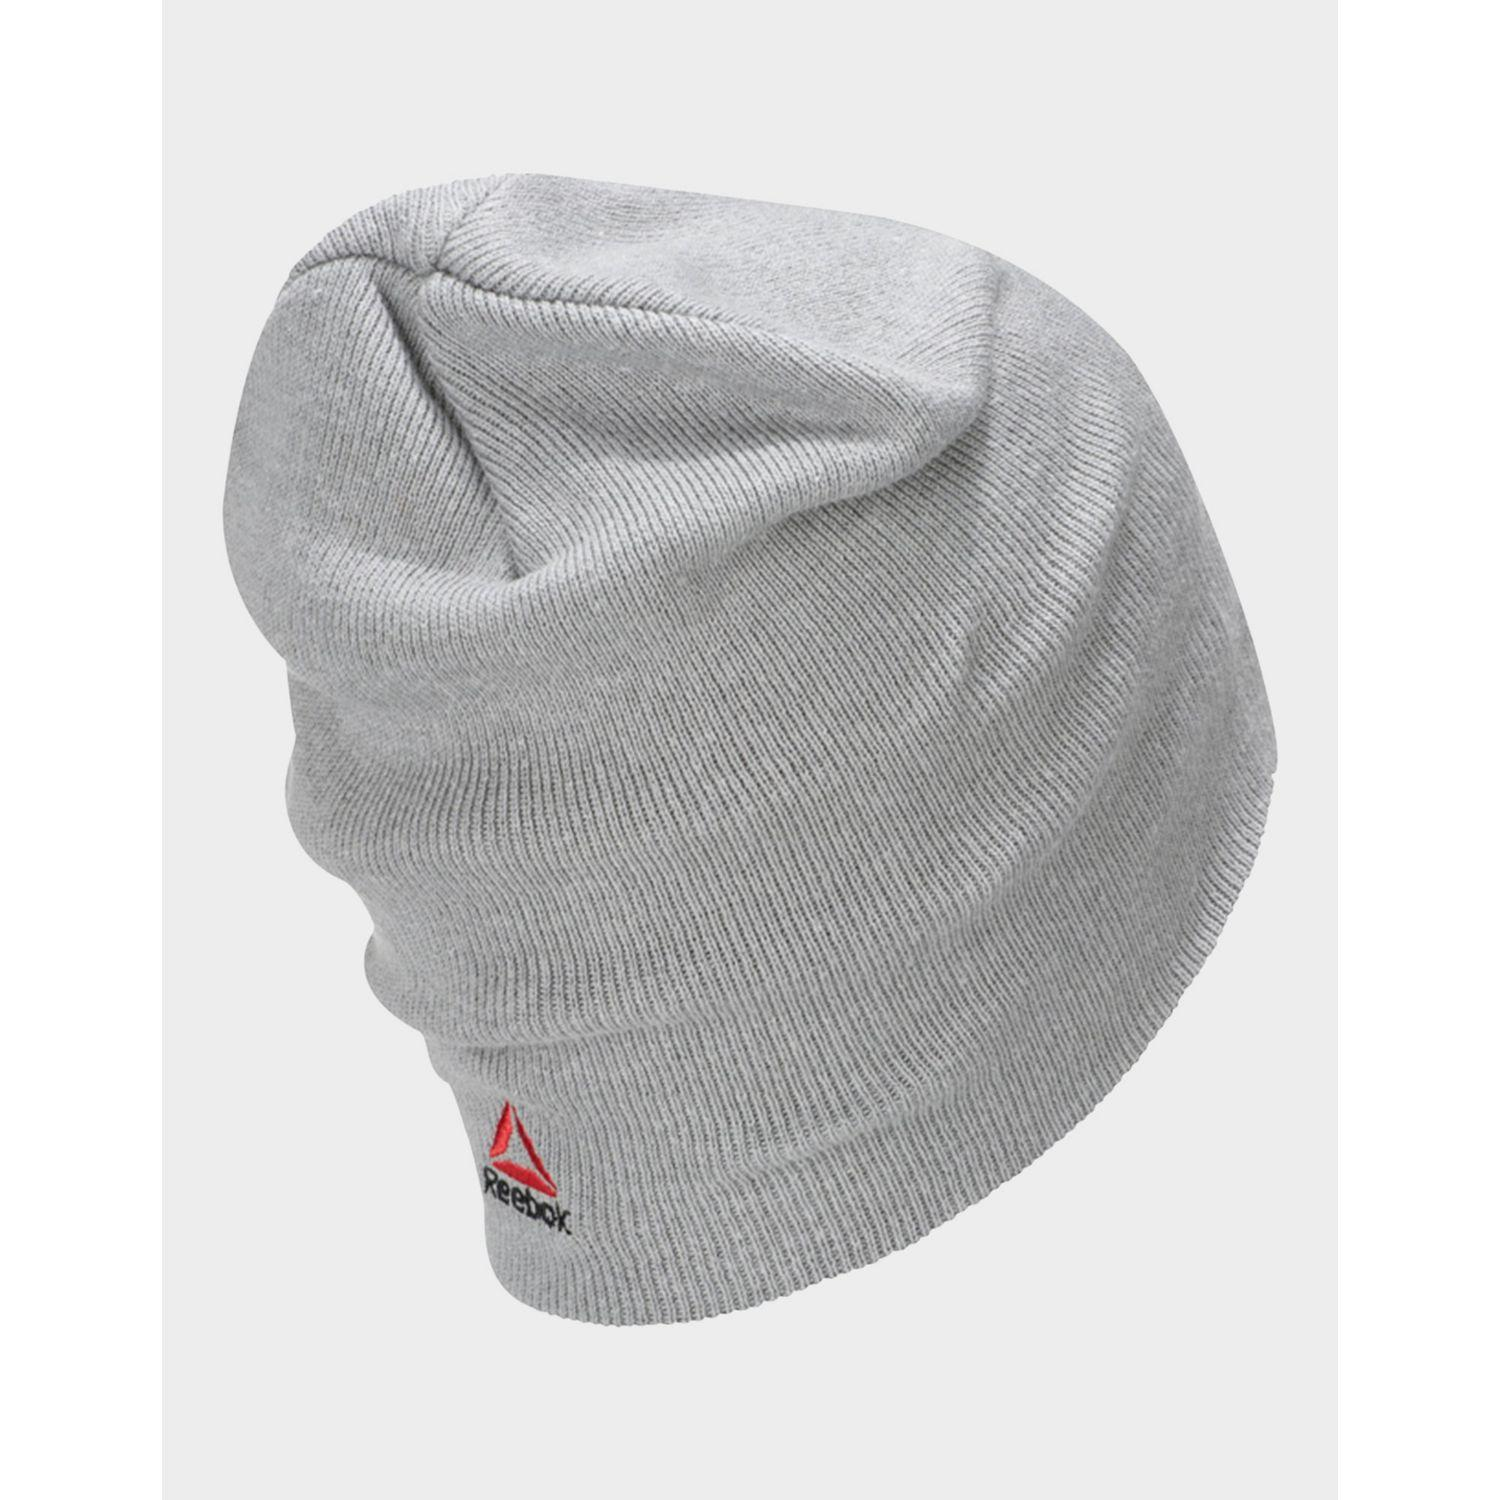 8fa786c768a Lyst - Reebok Ufc Beanie in Gray for Men